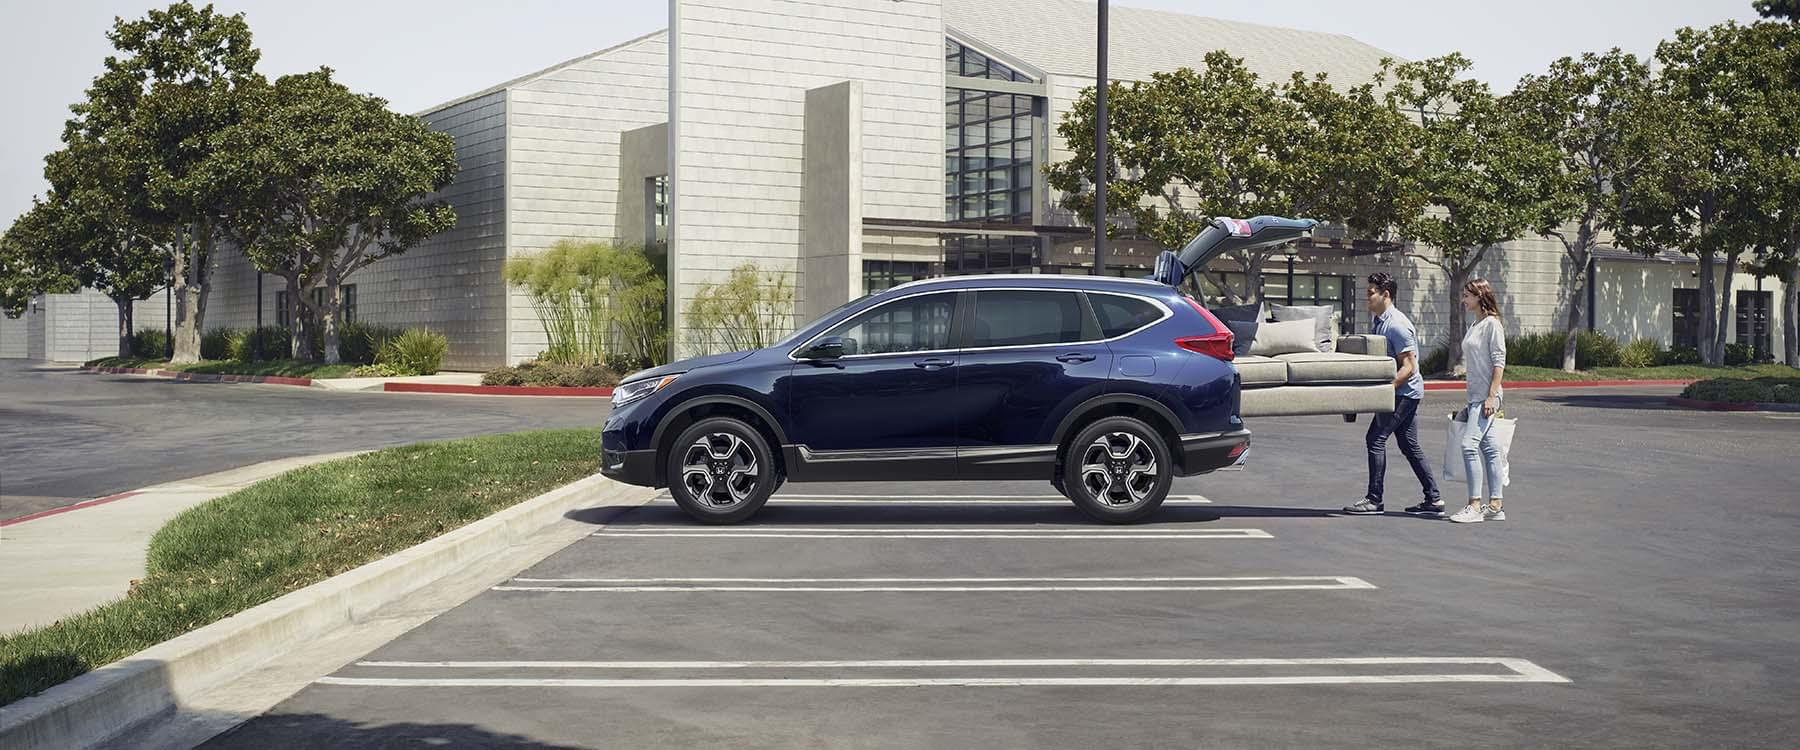 The 2017 Honda CR V Has A Long List Of Utility Features That Make It Formidable Presence On Road And Can Tackle Just About Any Driving Situation